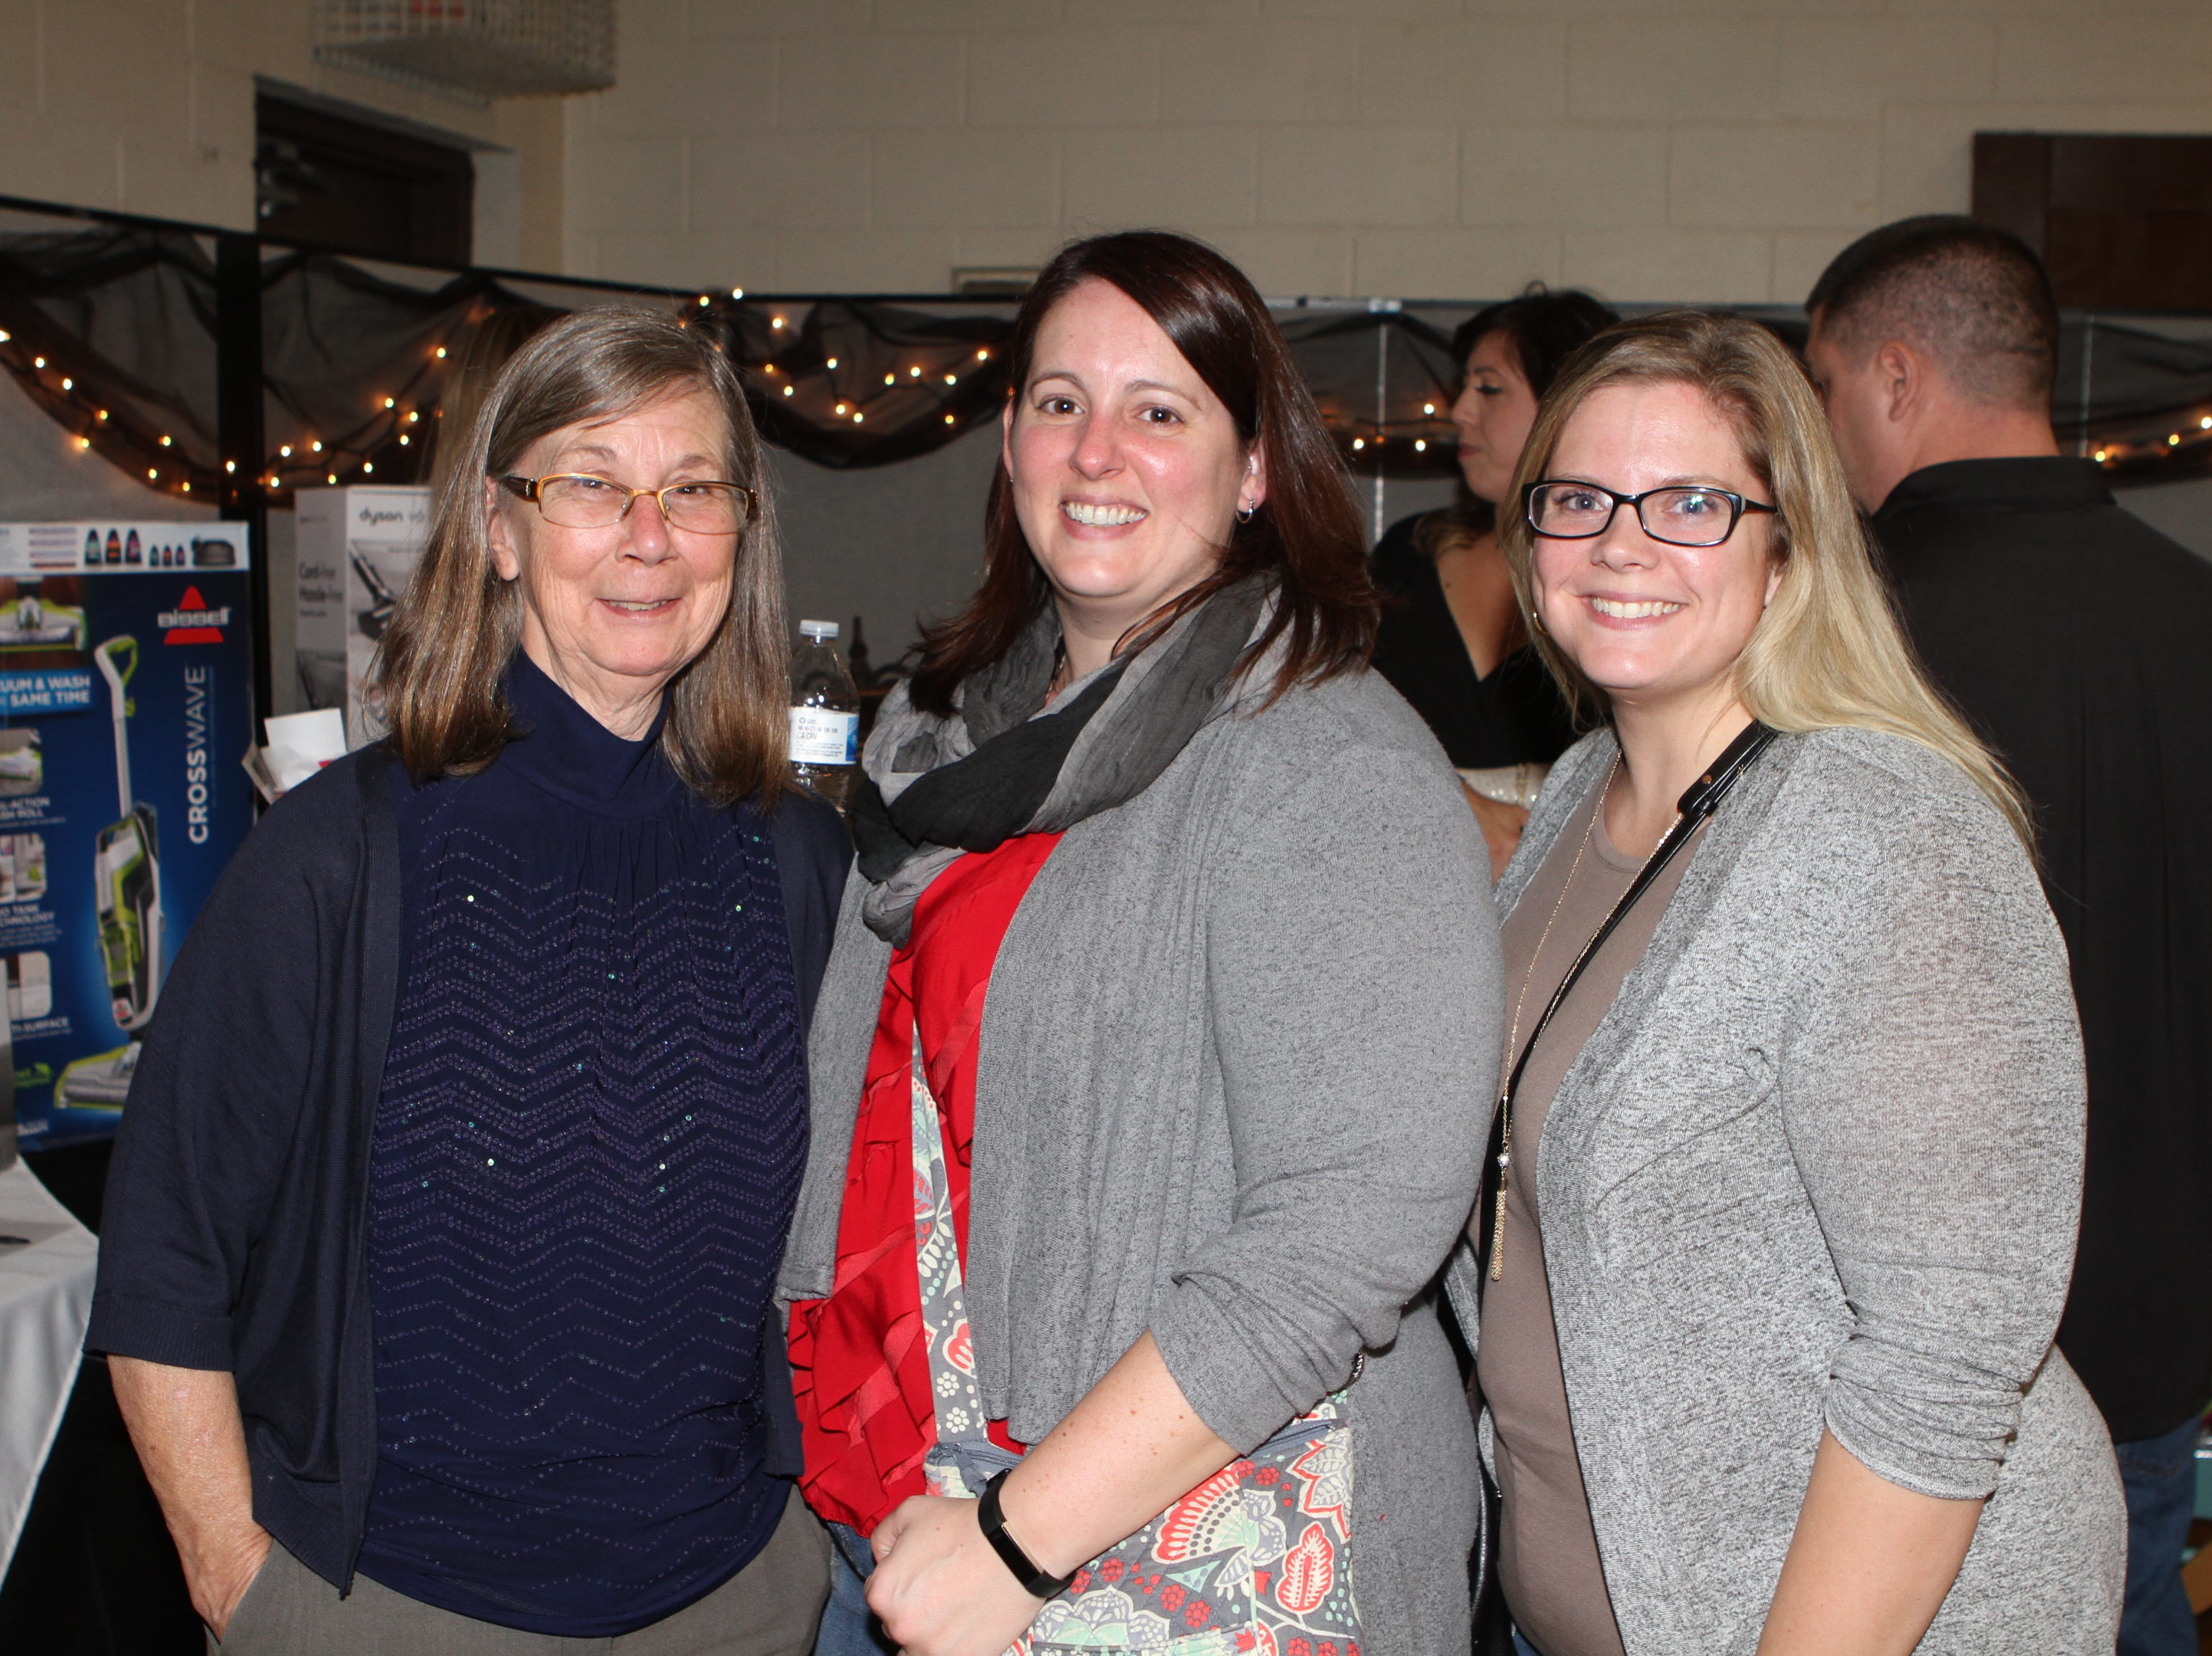 Joyce Downey, Kathy Kerchief and Ashley McIver at Casino Night at Immaculate Conception School on Saturday, Nov. 3, 2018.